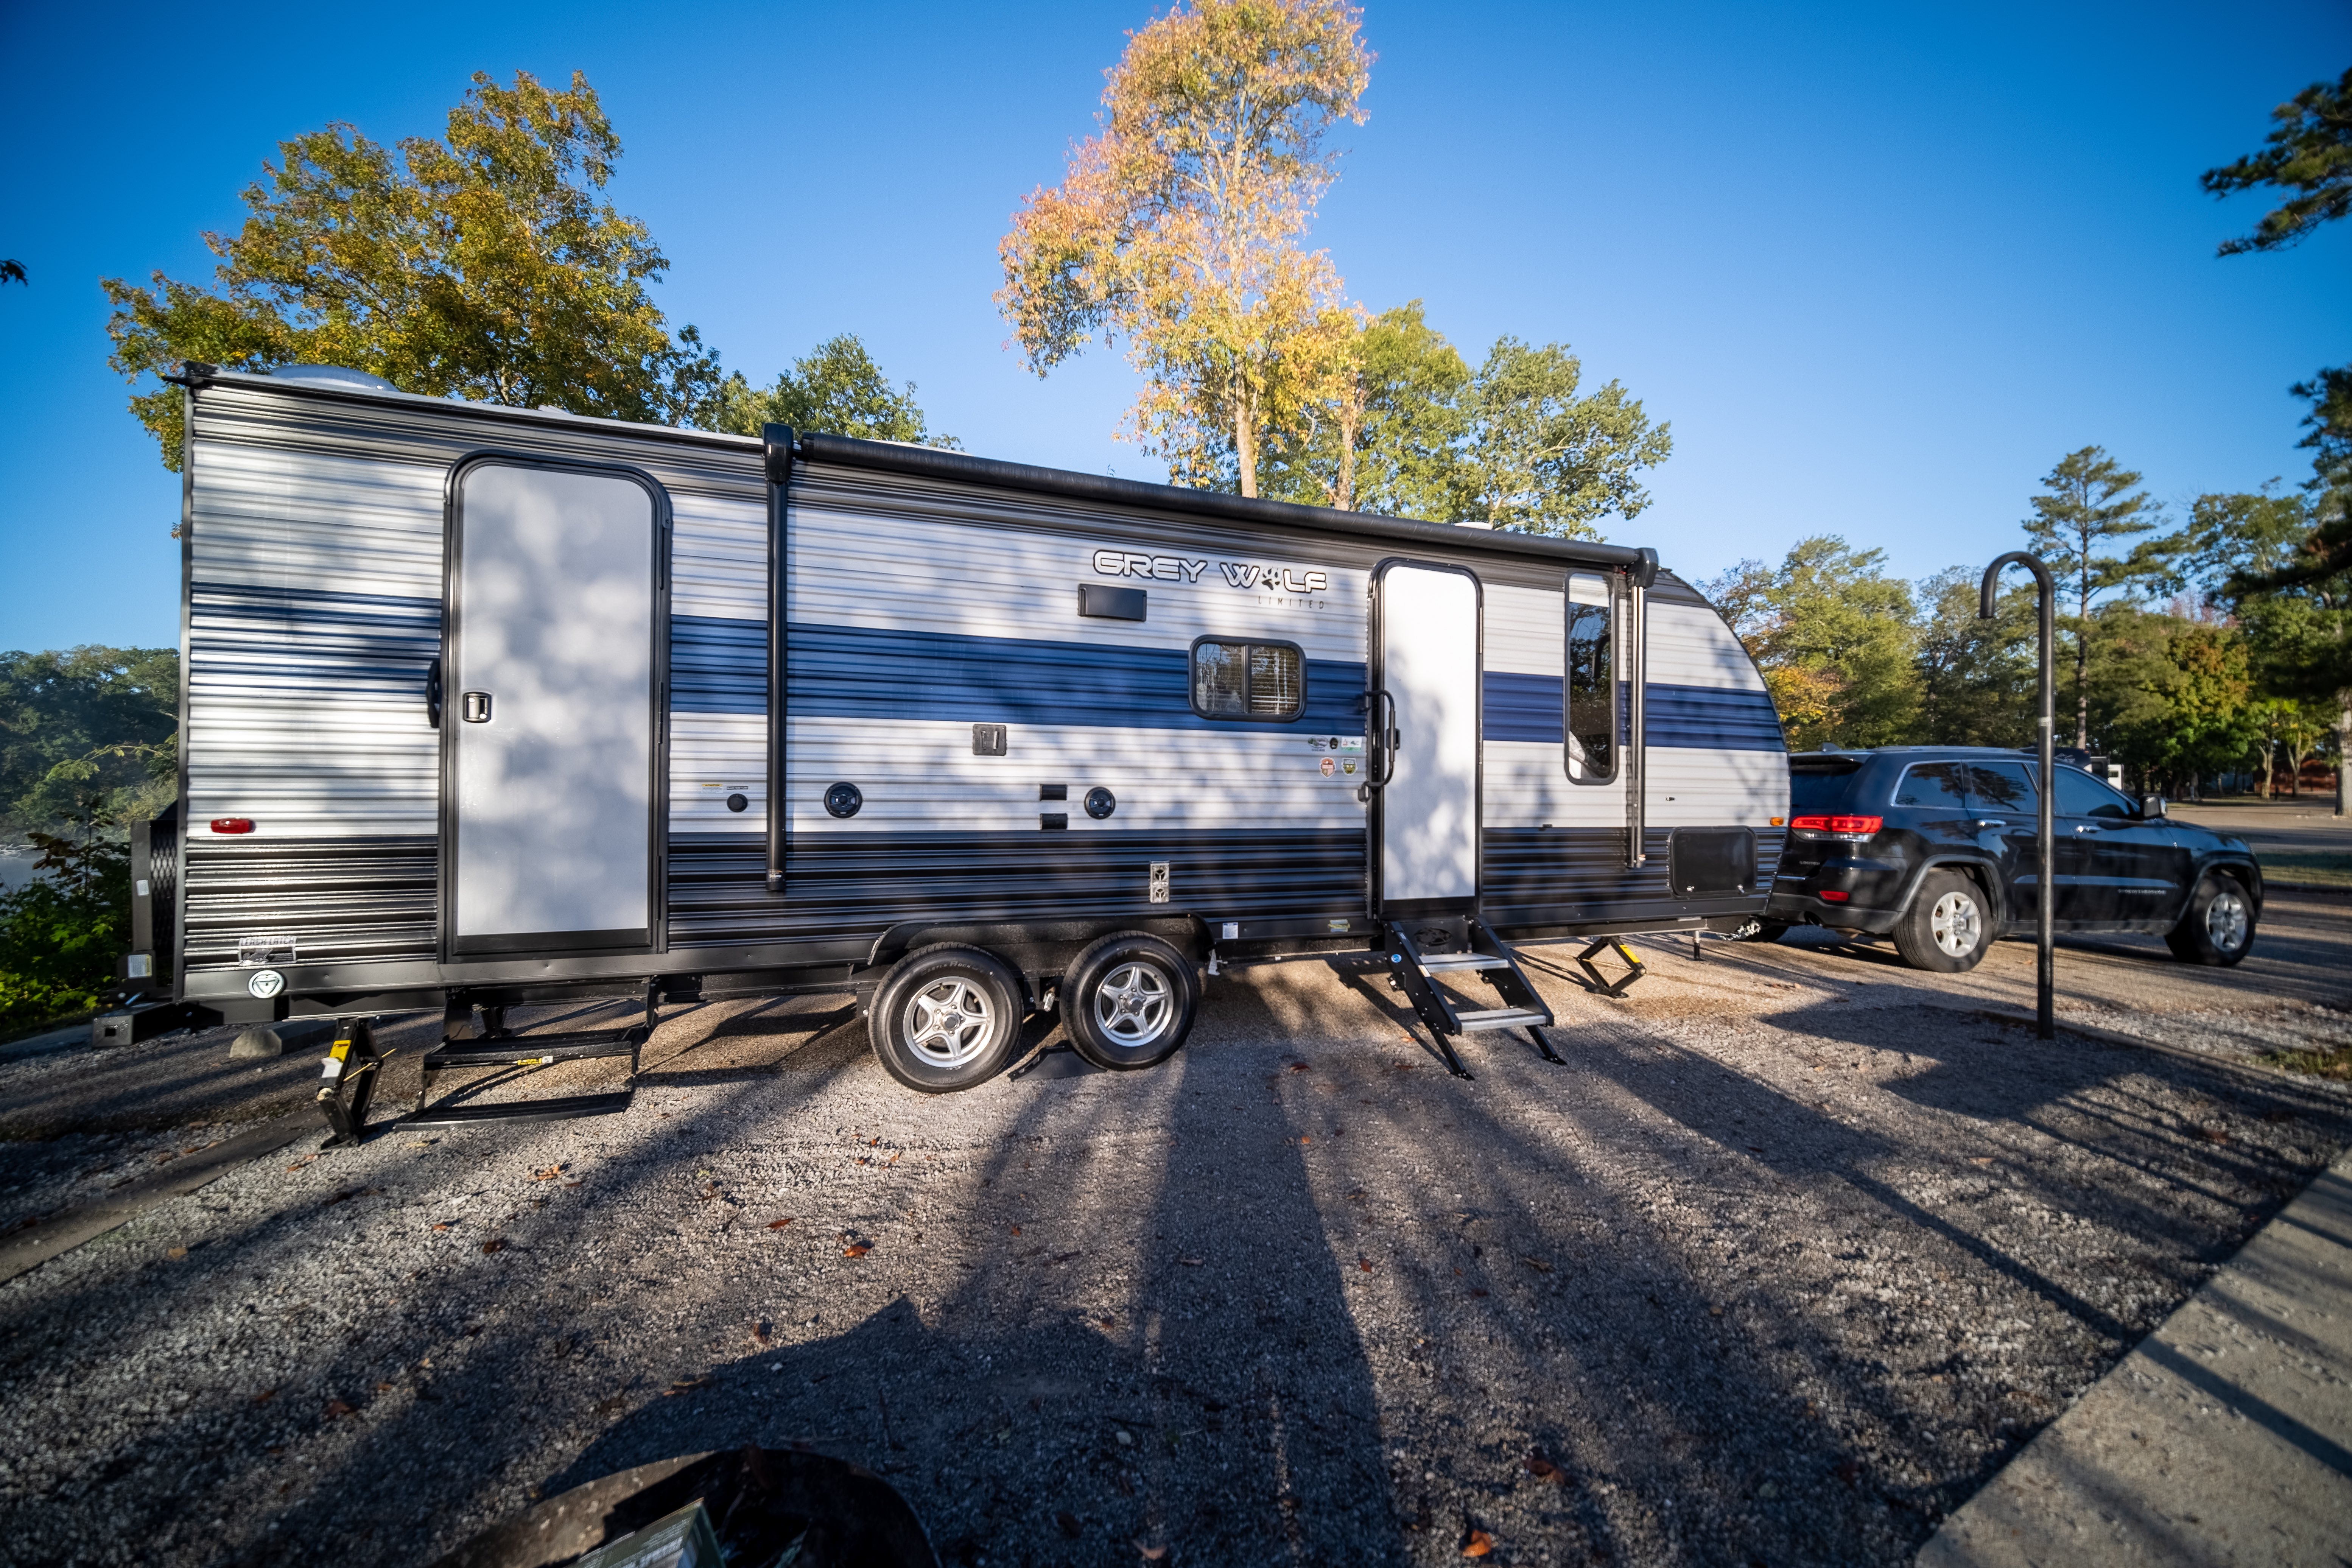 exterior. Forest River Cherokee Grey Wolf 2021